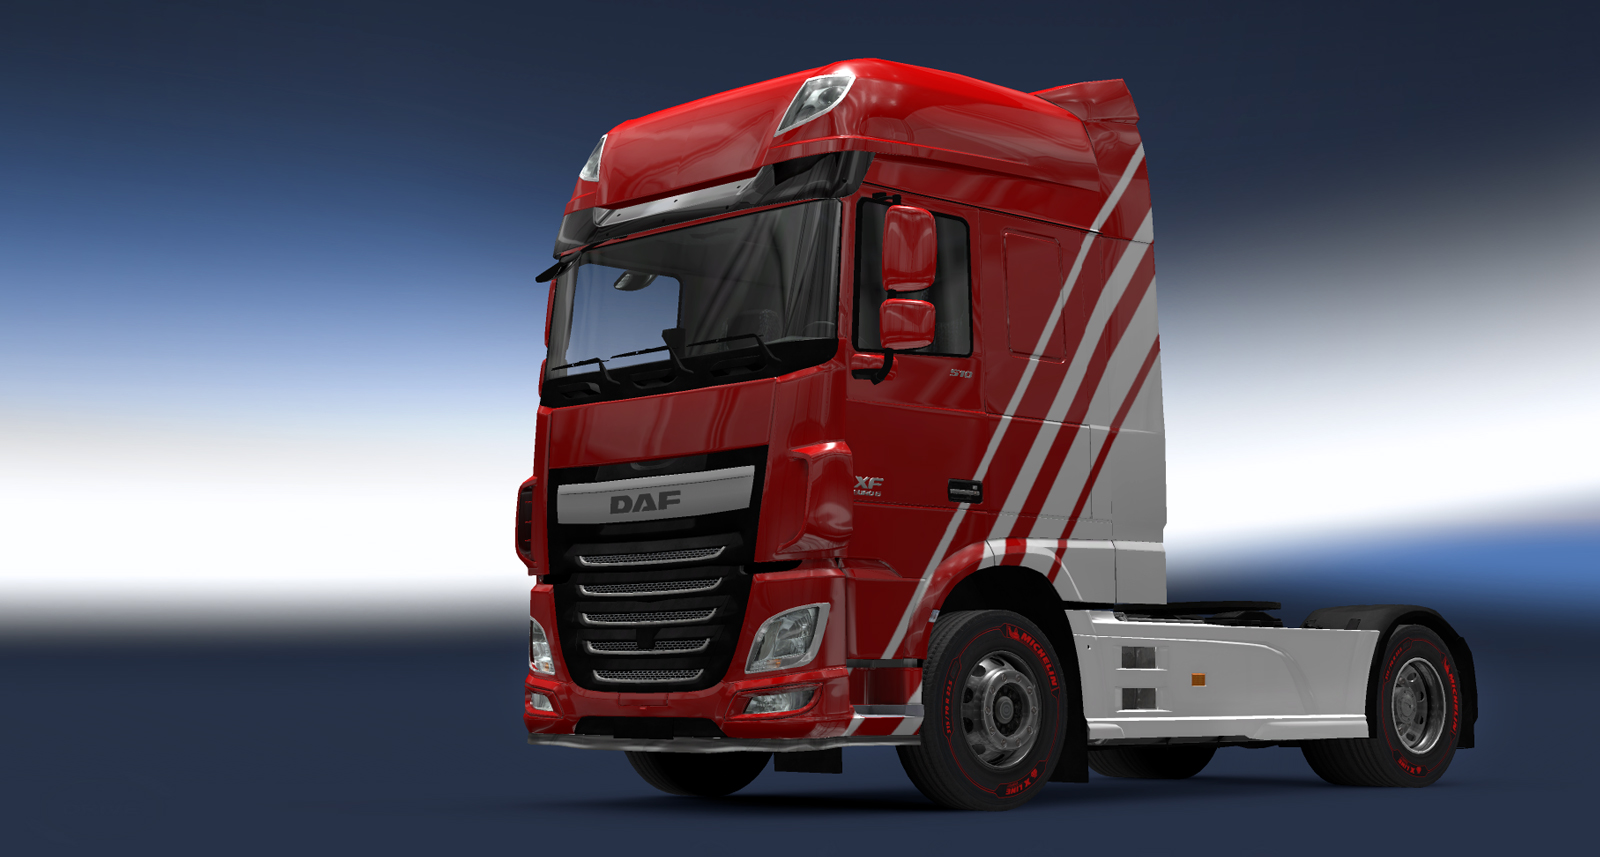 ETS2_tyre_colored_002.jpg